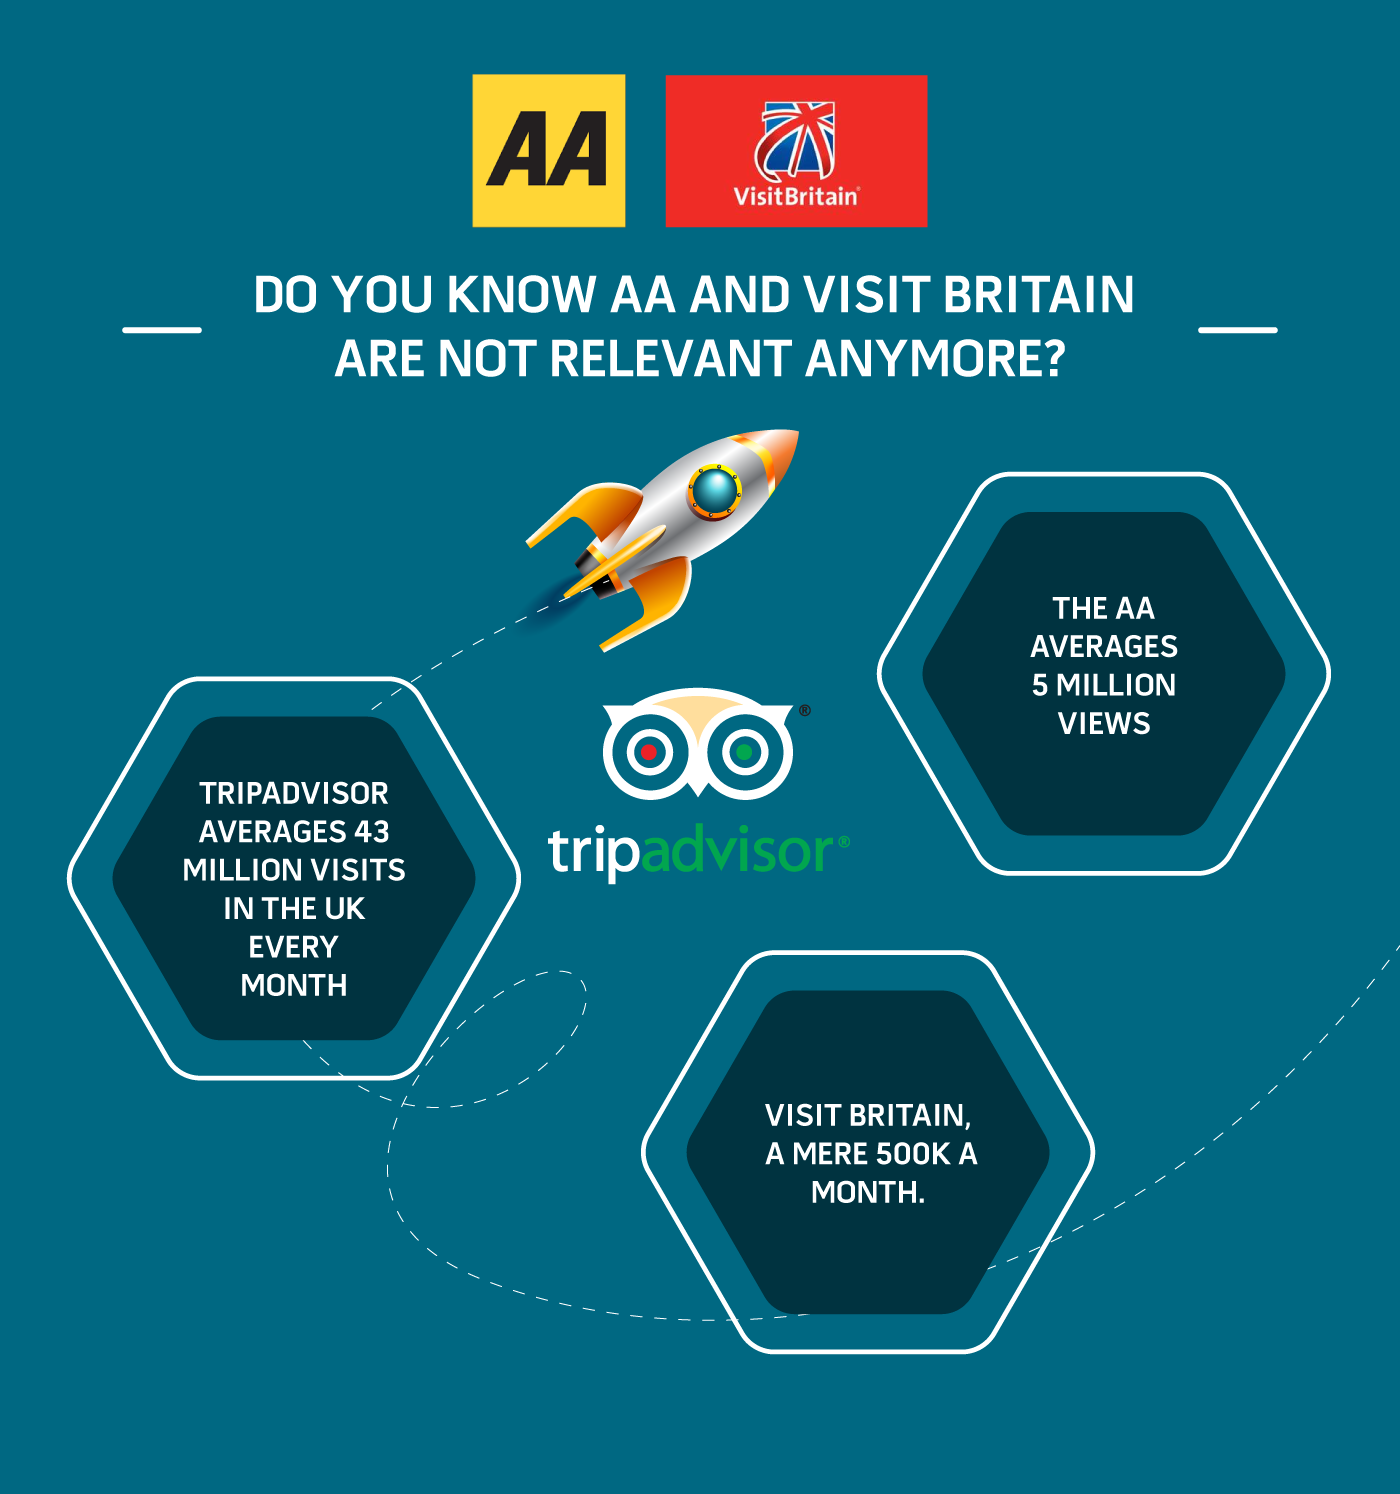 People are not using the AA or VIsit Britain anymore